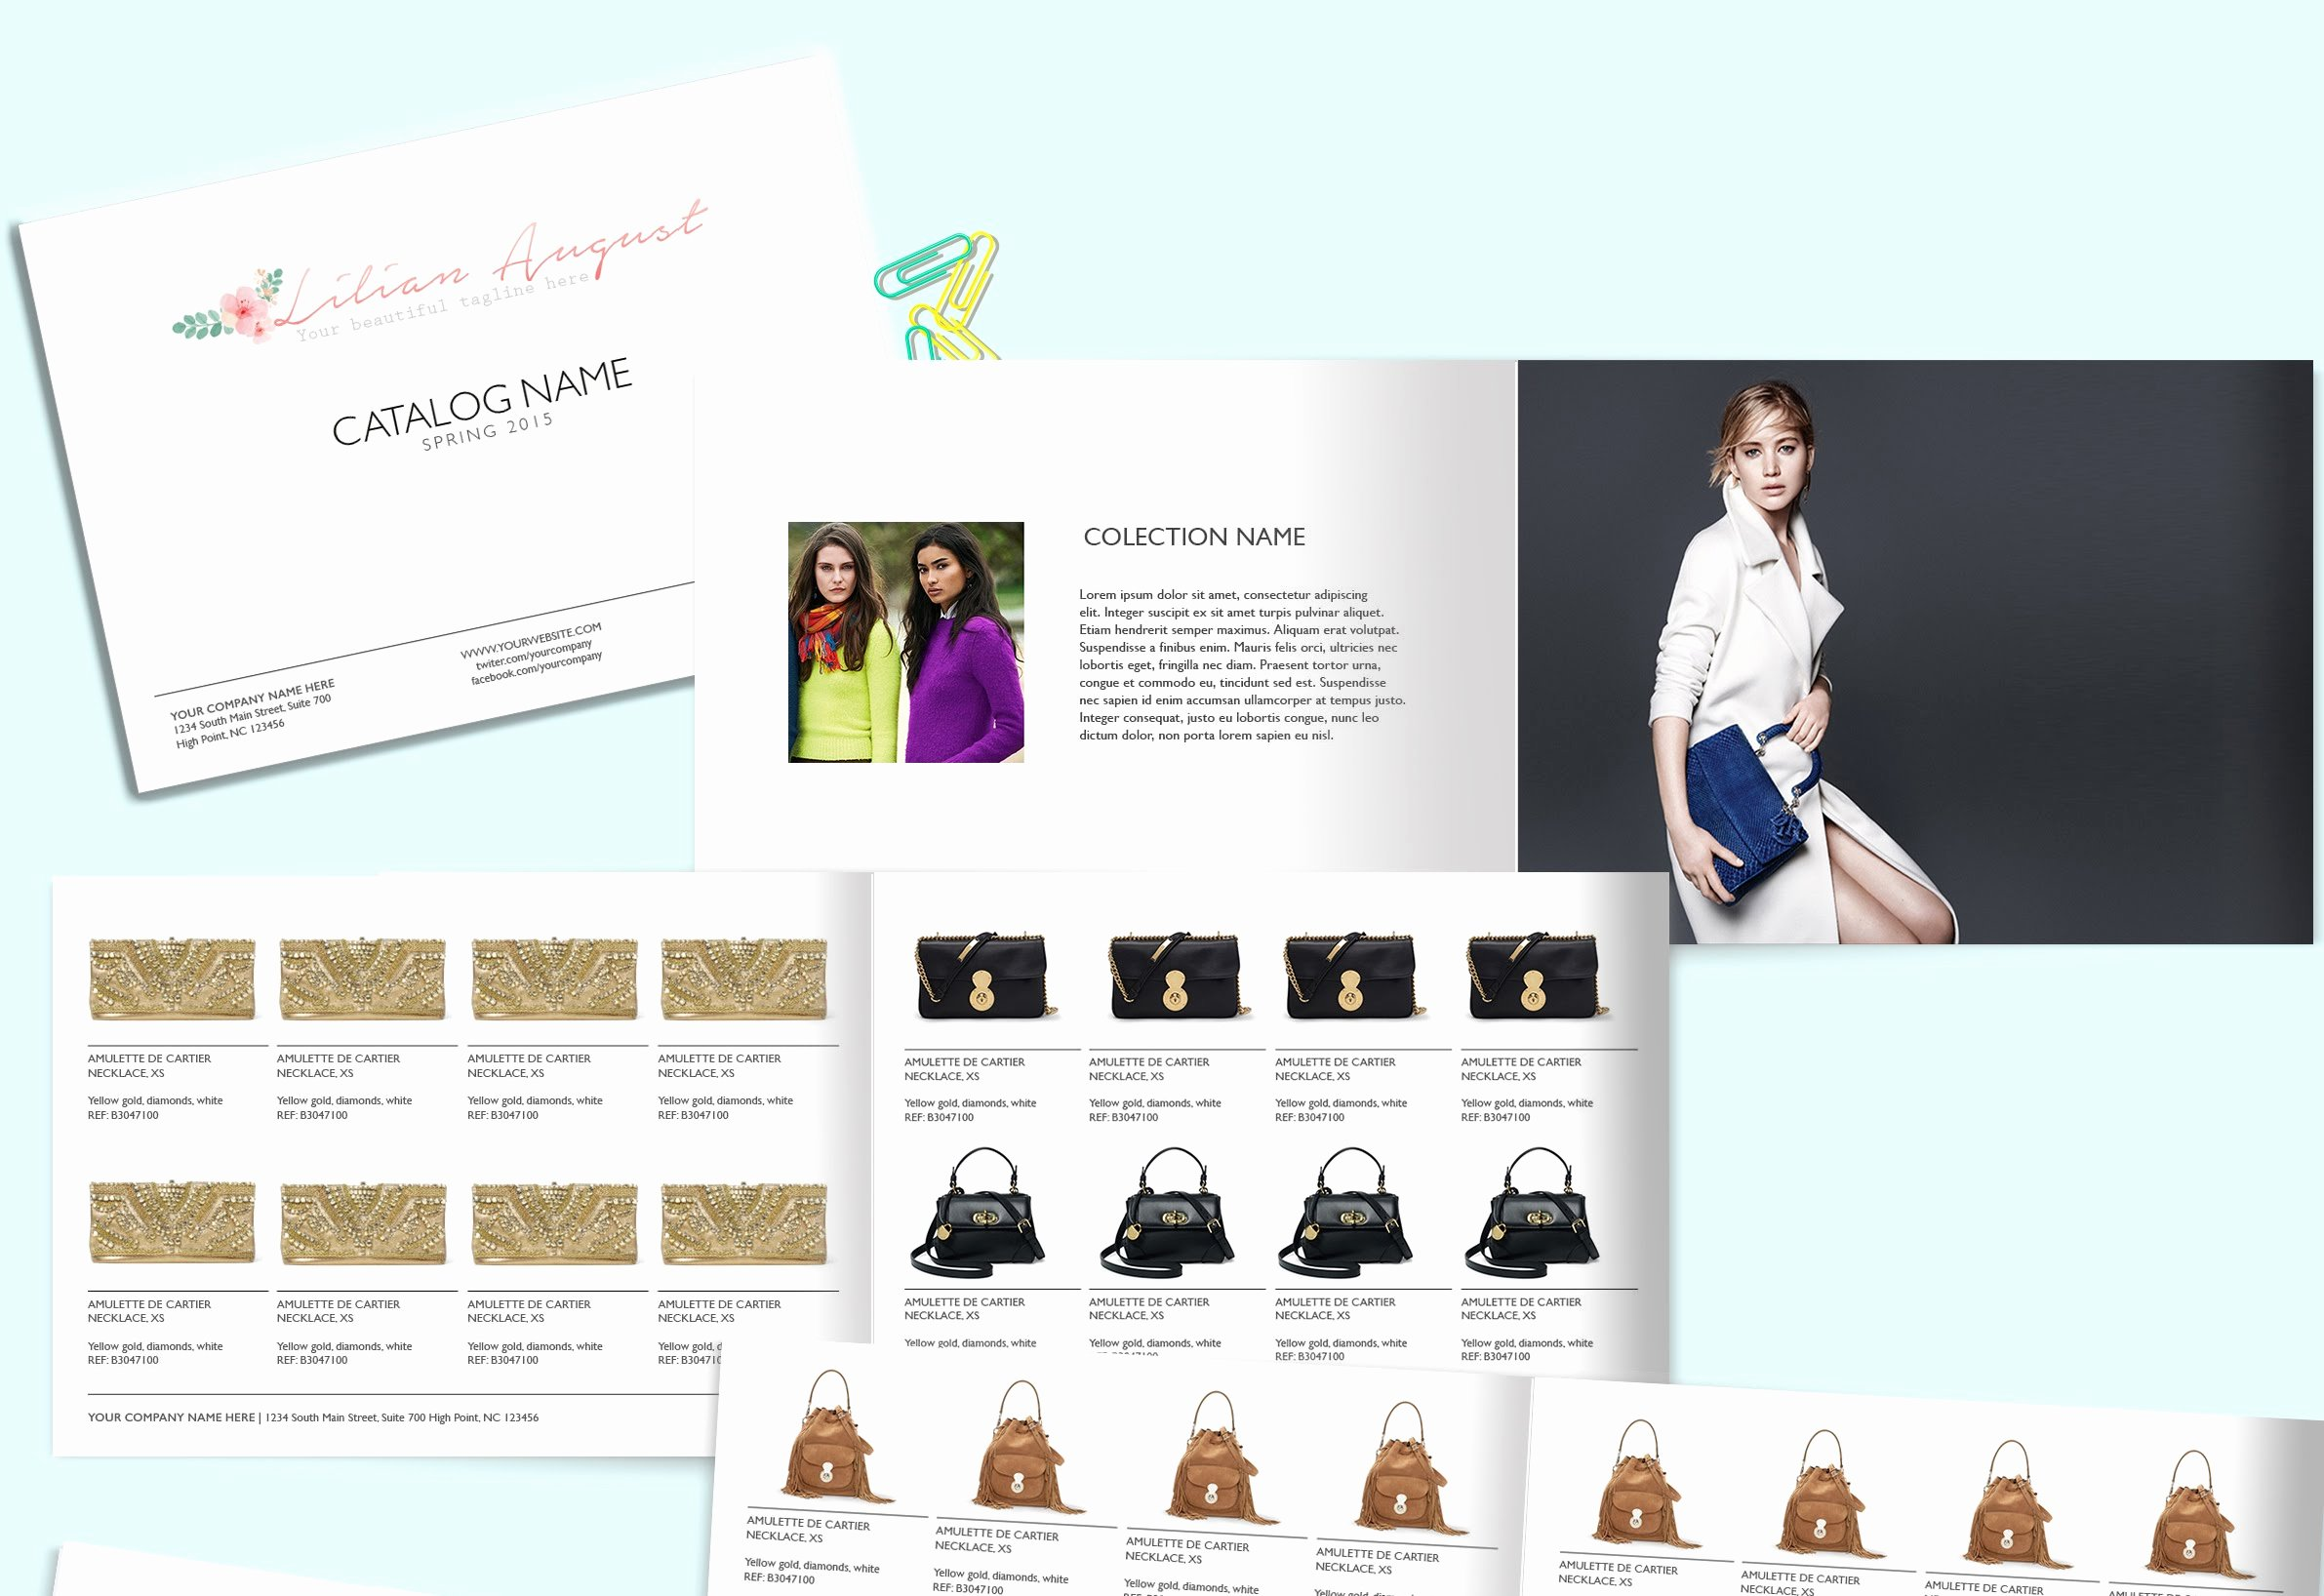 Catalogue Template for Word Best Of Catalog Template for Word Portablegasgrillweber